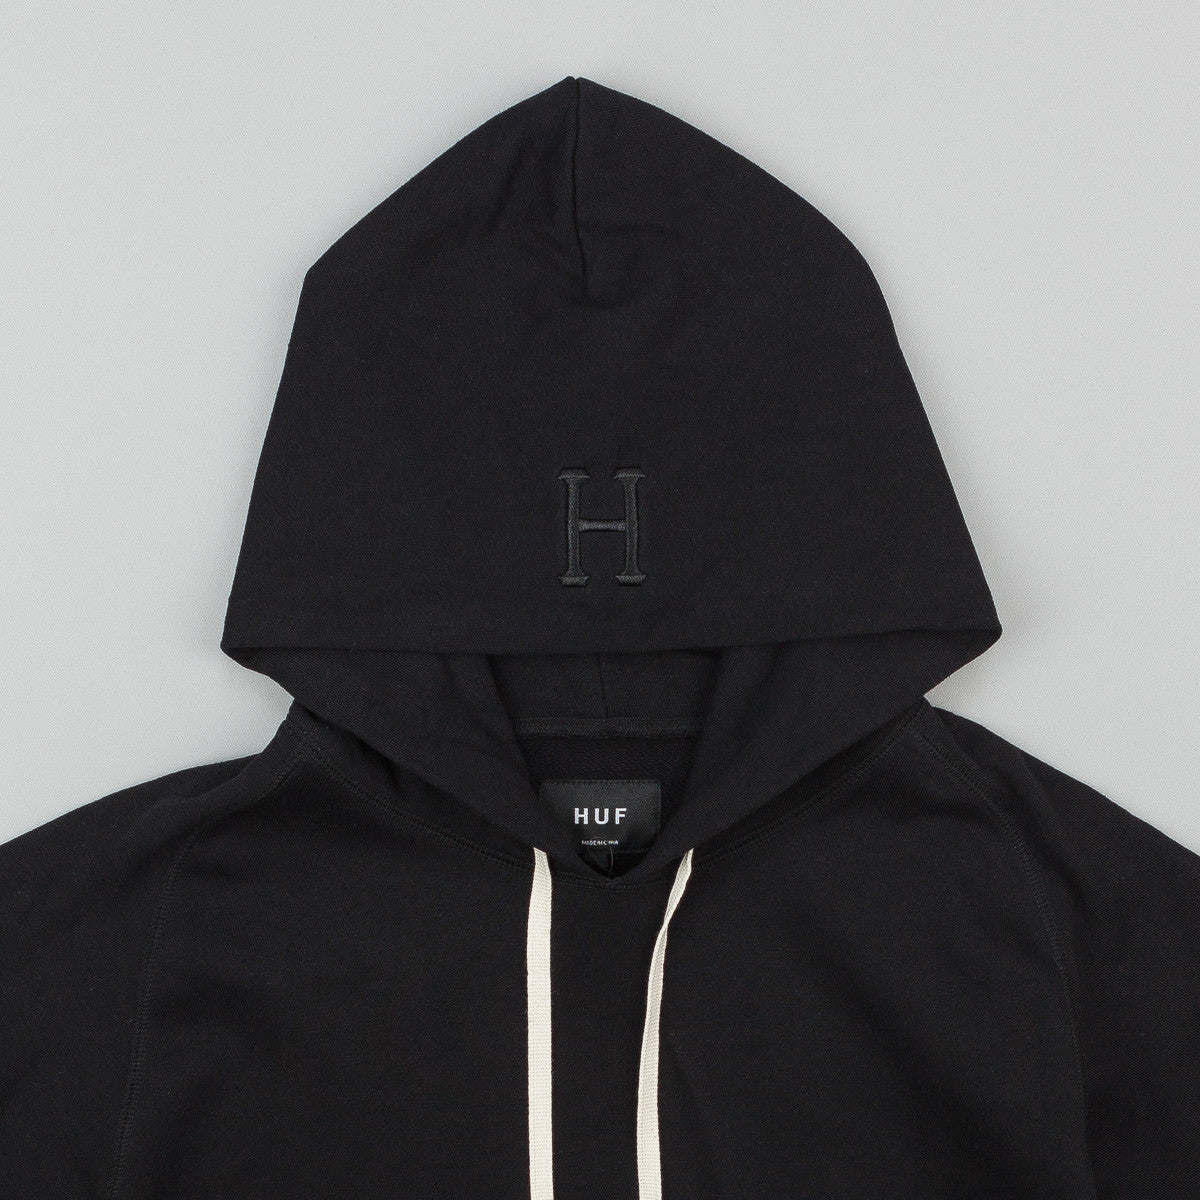 HUF Mil Spec Cadet Hooded Sweatshirt - Black